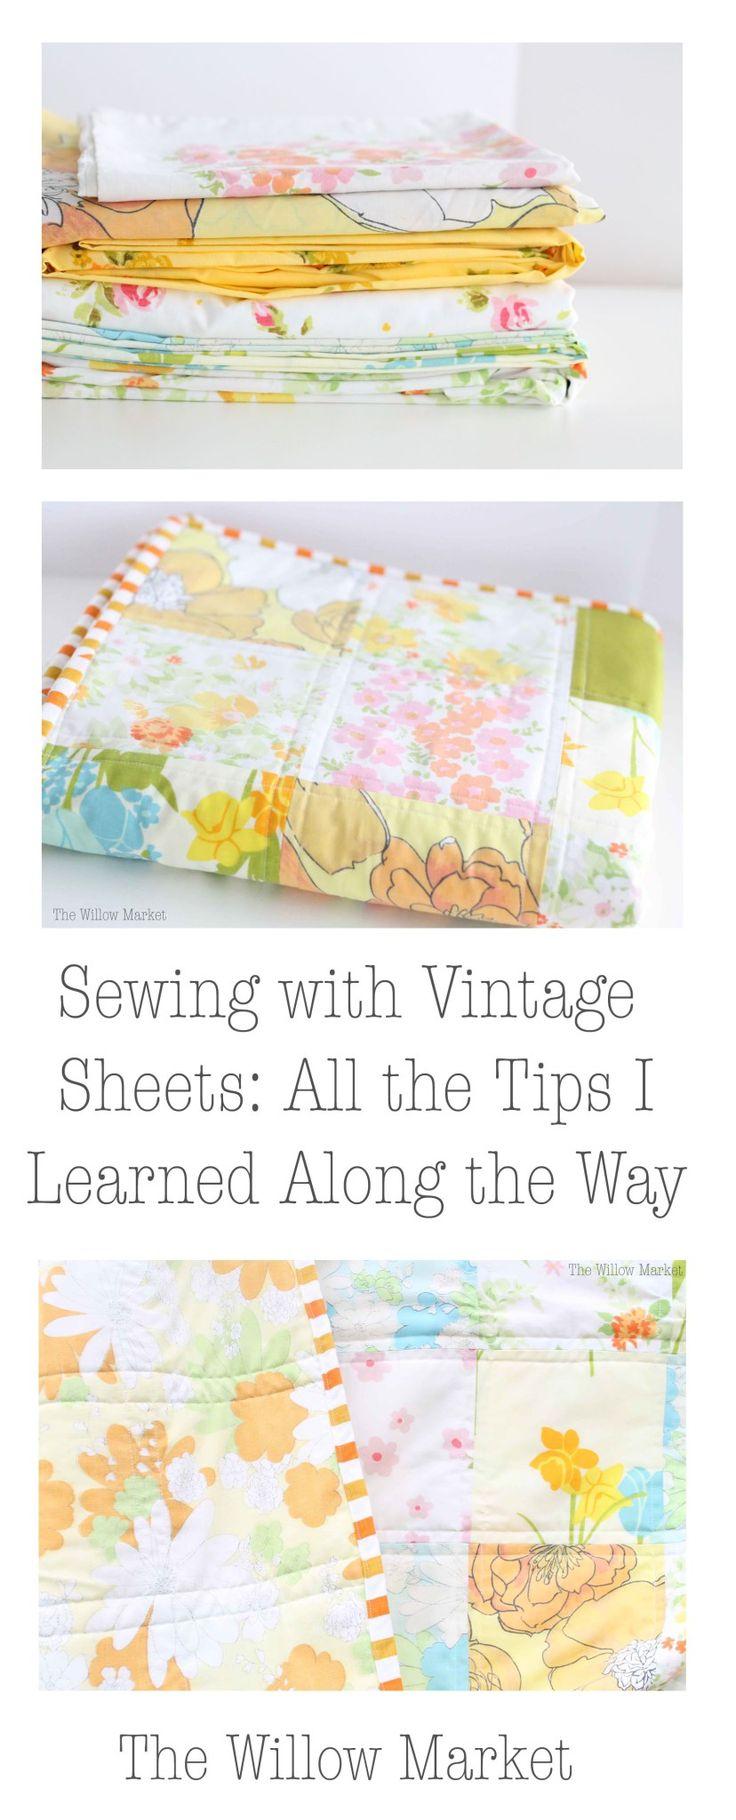 Sewing with Vintage Sheets; Everything I learned along the way. Lots of tips!